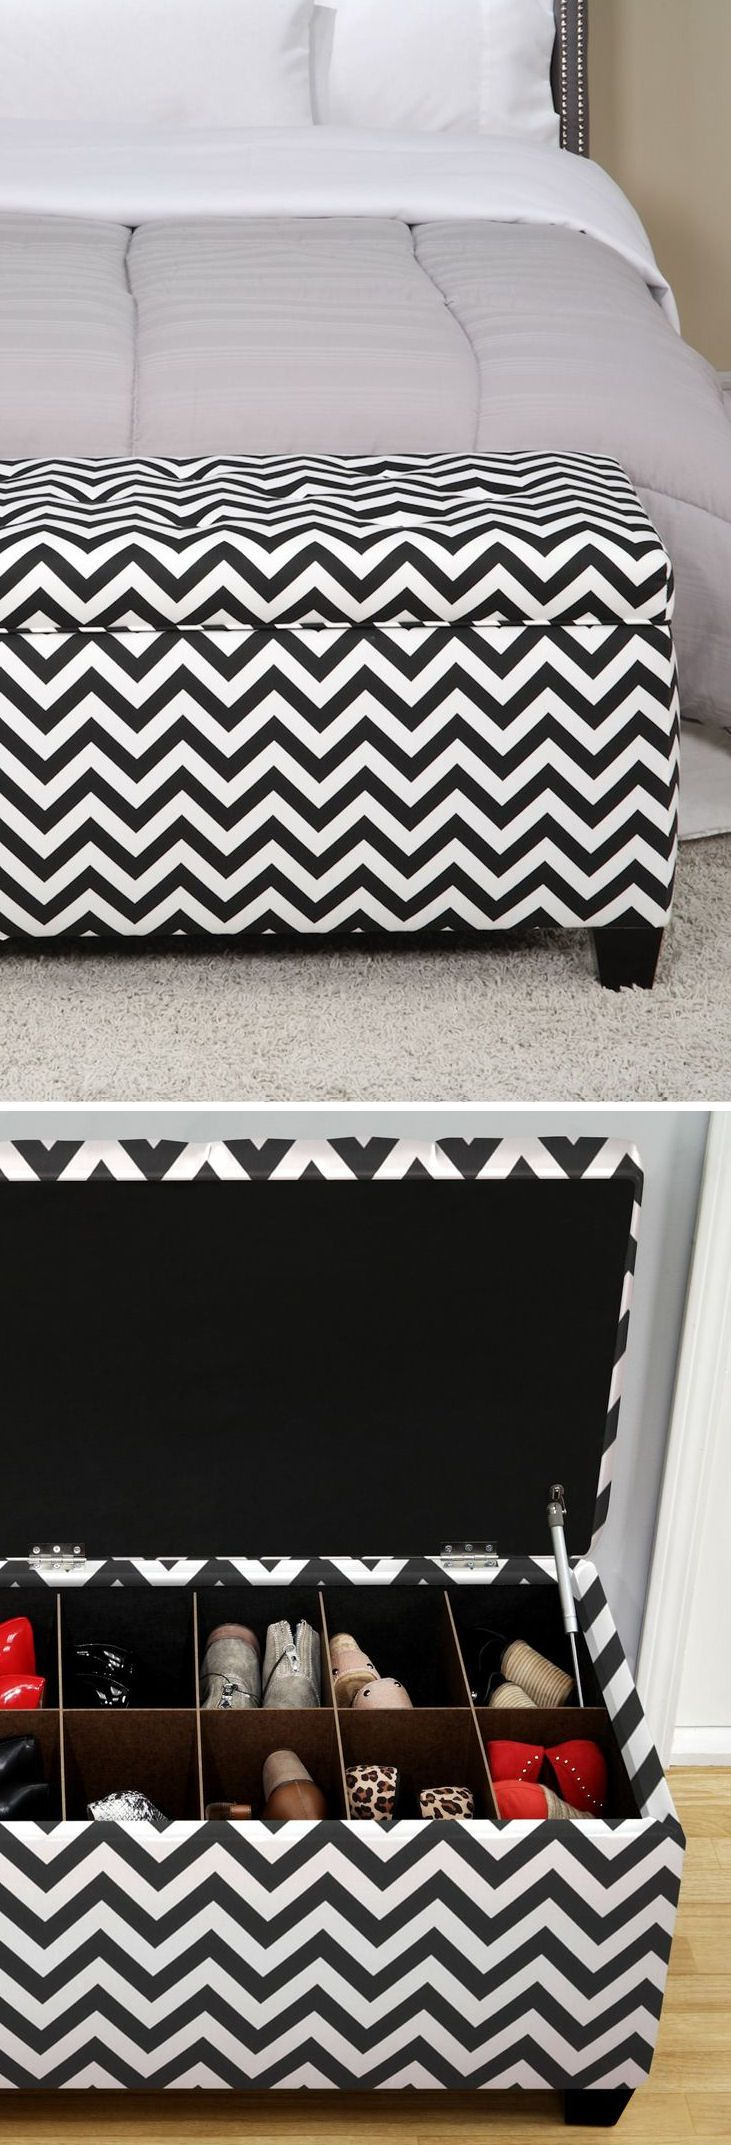 Upholstered Shoe Storage Bench Practical Ideas that